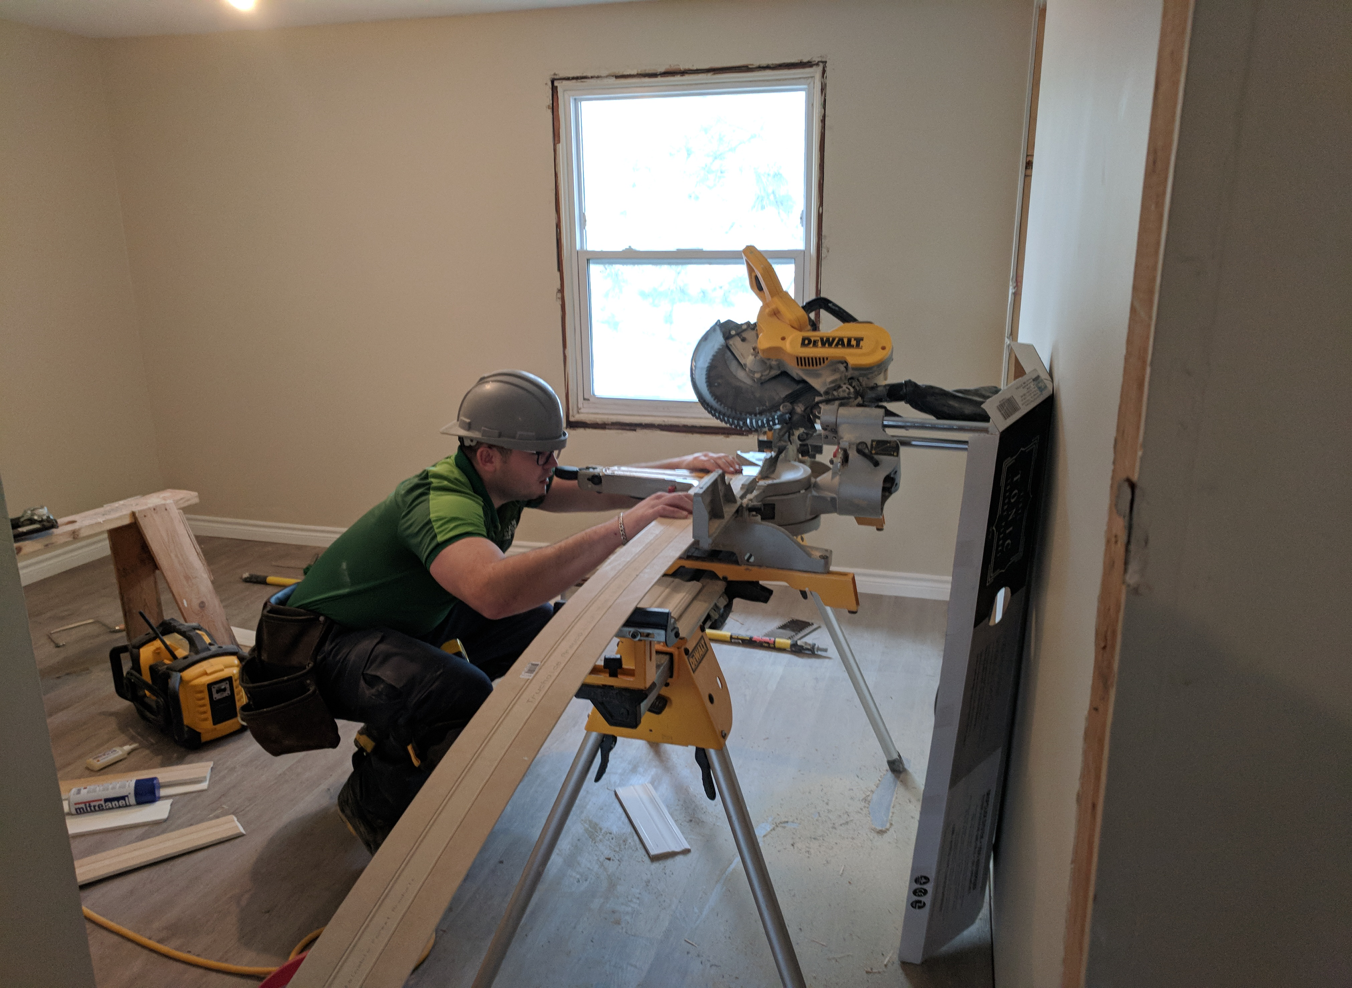 Mohawk student cutting trim to size